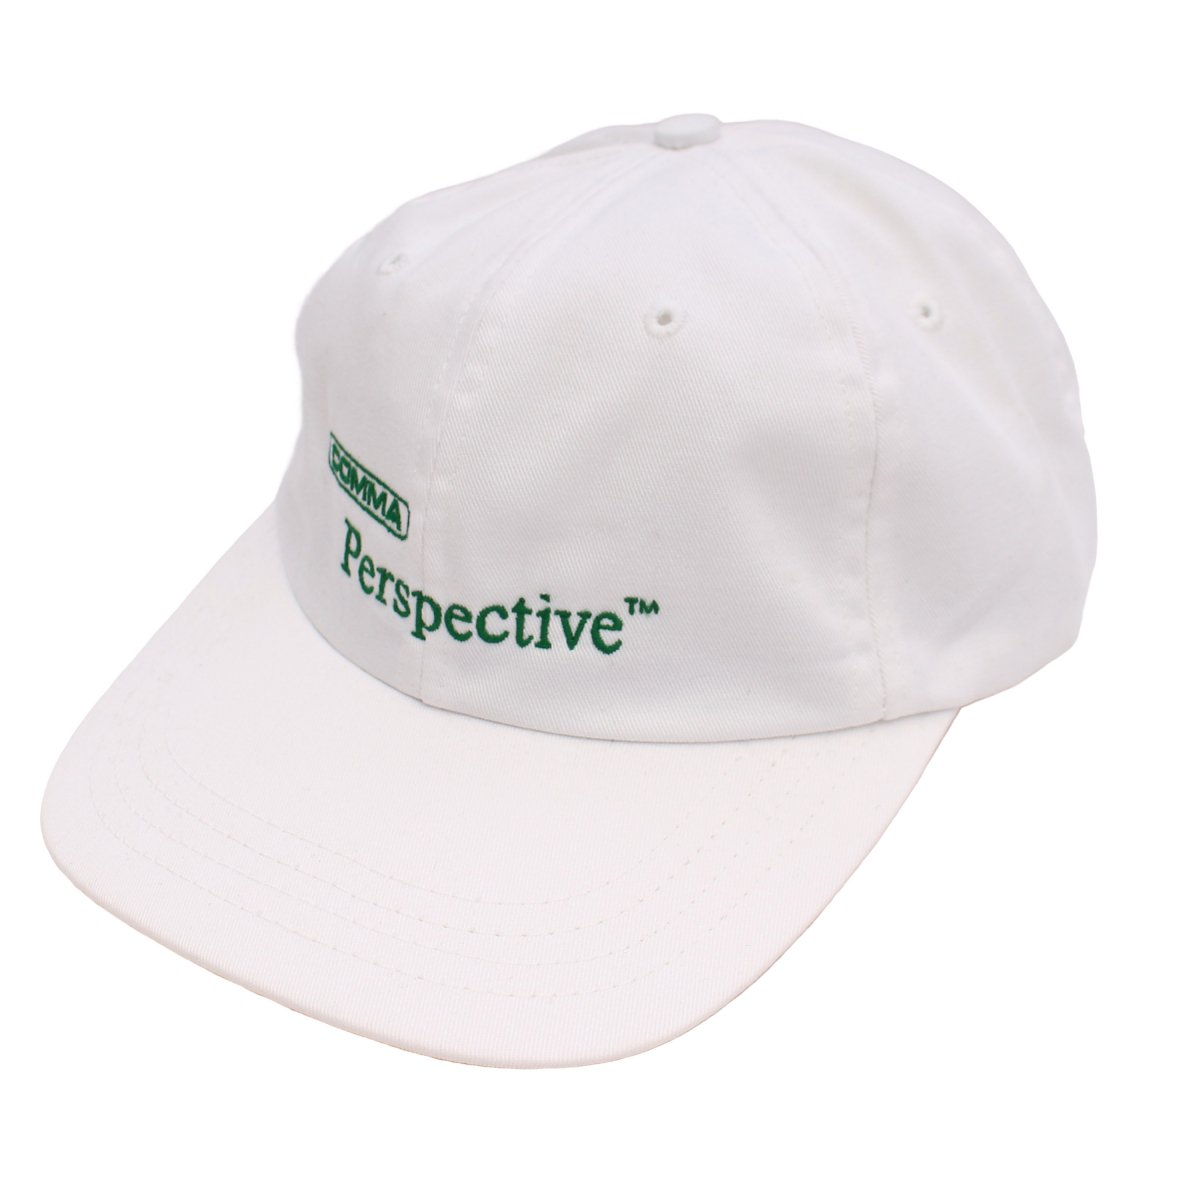 Perspective™ White Nylon Strap Hat